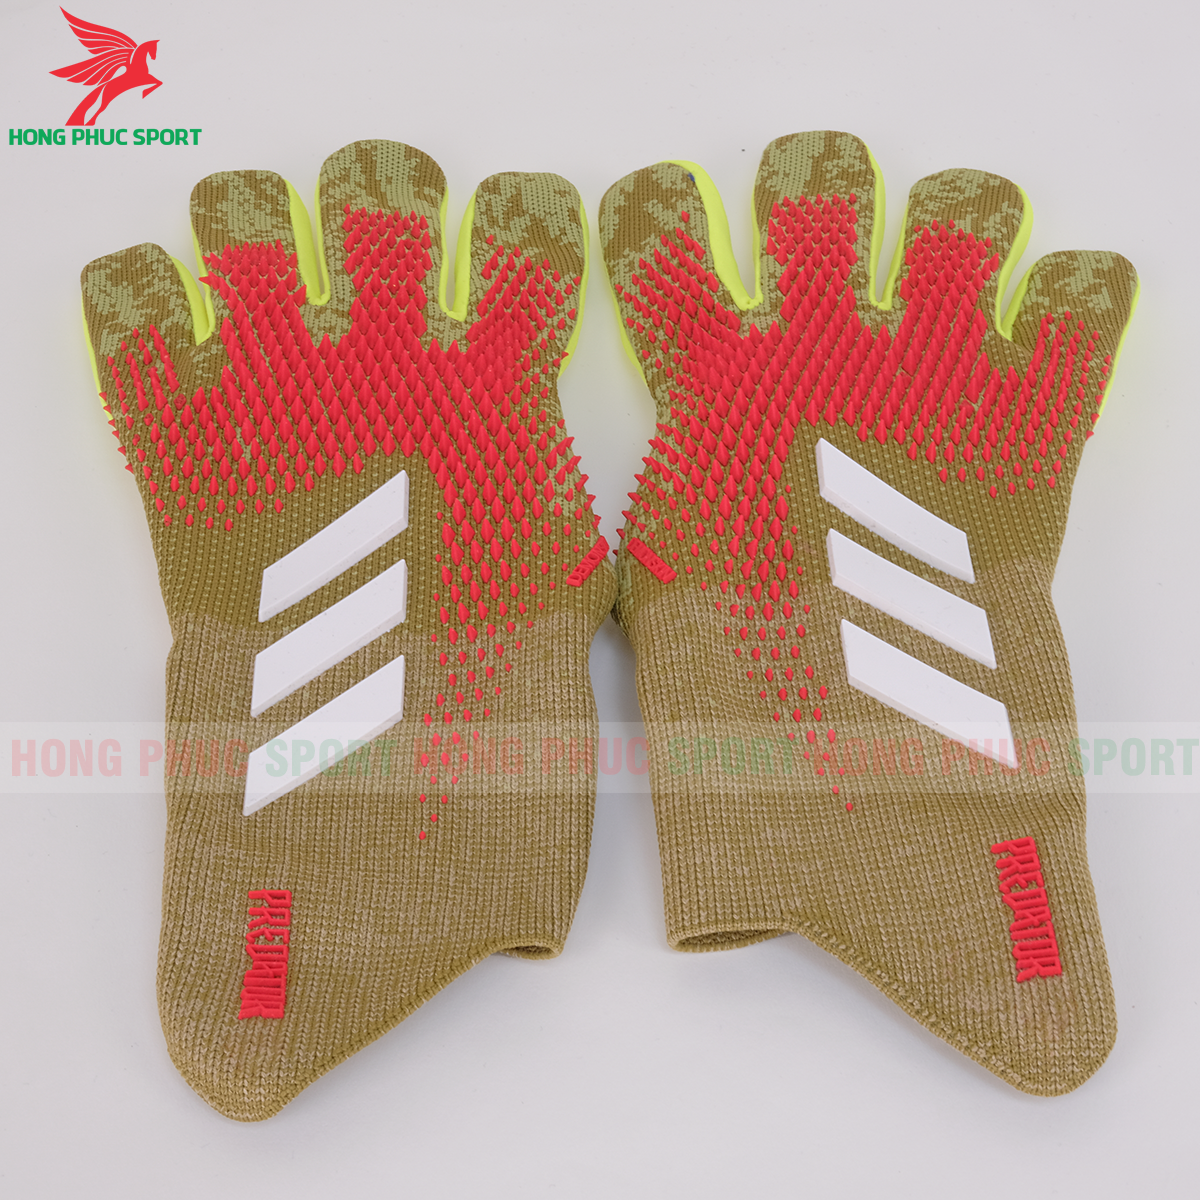 https://cdn.hongphucsport.com/unsafe/s4.shopbay.vn/files/285/gang-tay-thu-mon-adidas-predator-gl-mutator-urg-20-mau-1-2-5f7c44cd4ea63.png